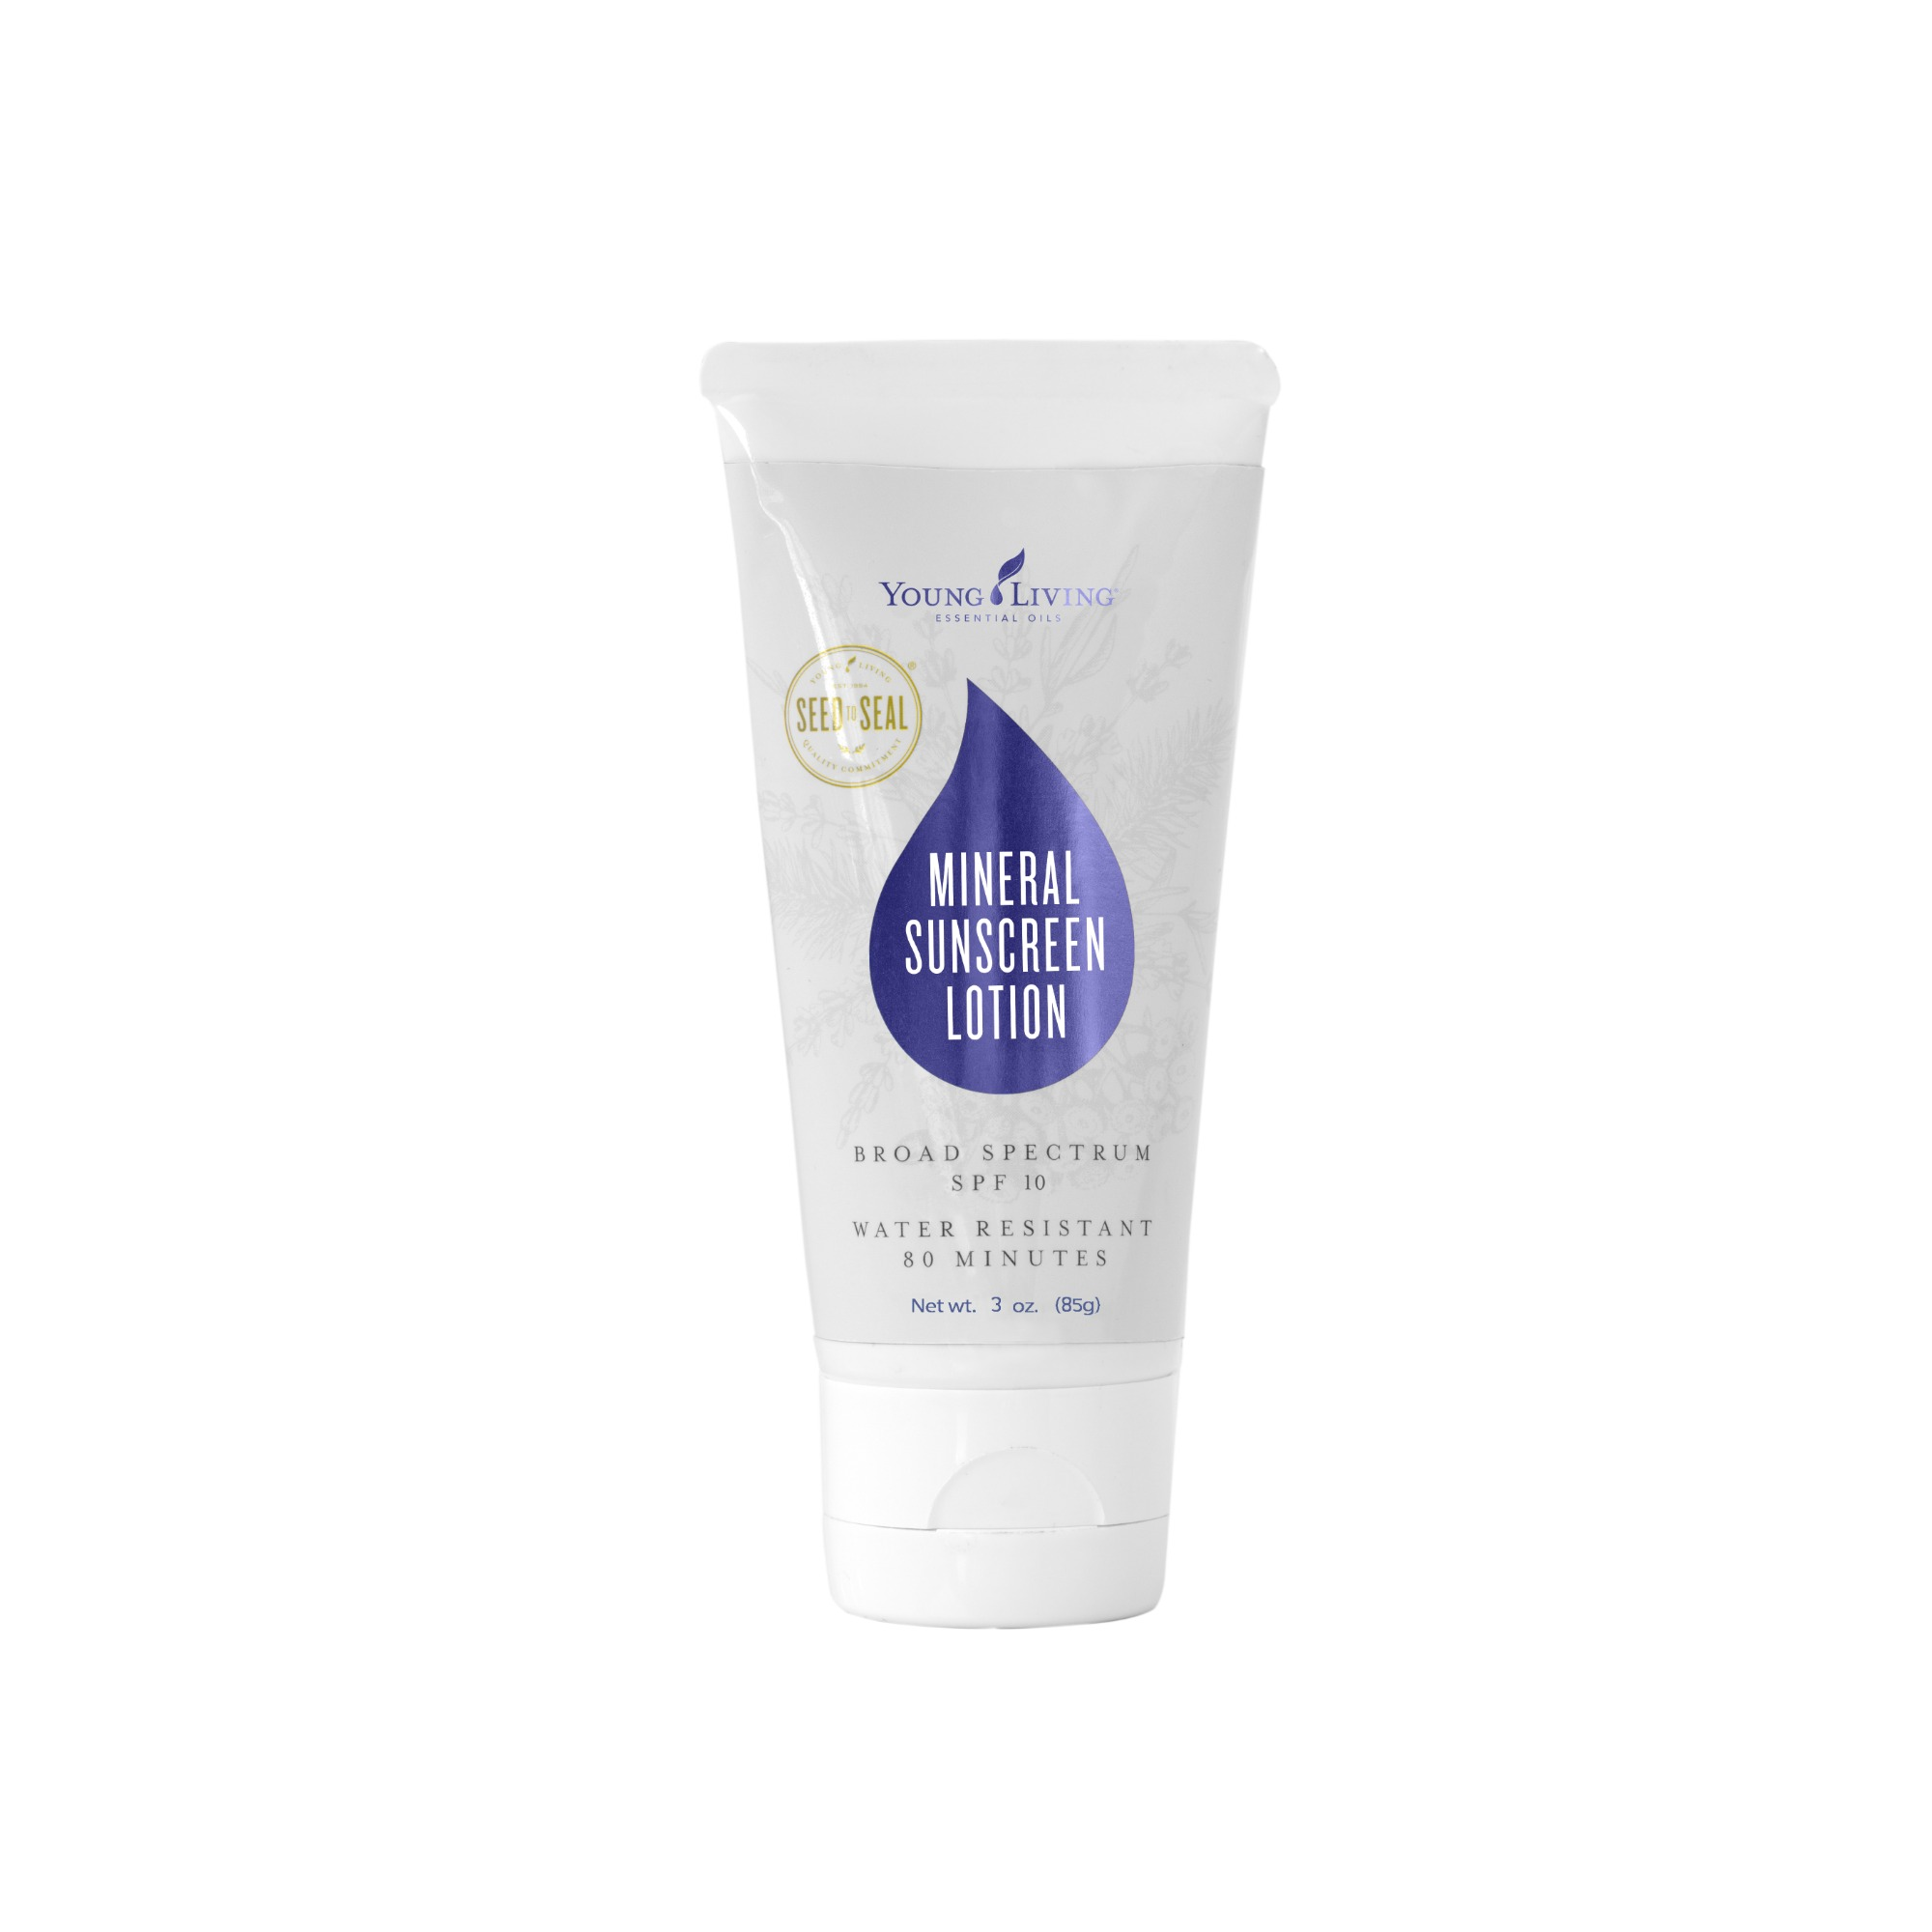 MINERAL SUNSCREEN (SPF 50)    This sunscreen provides protection against UVA and UVB rays without harsh chemical ingredients. Non-greasy, reef-safe, SPF 50 protection, with non-nano zinc oxide. Goes on smooth and stays water and sweat-resistant for 80 minutes. Contains hypoallergenic ingredients and skin-loving essential oils like Helichrysum, Carrot Seed, and Sacred Frankincense.   Click here   to learn more about this product.